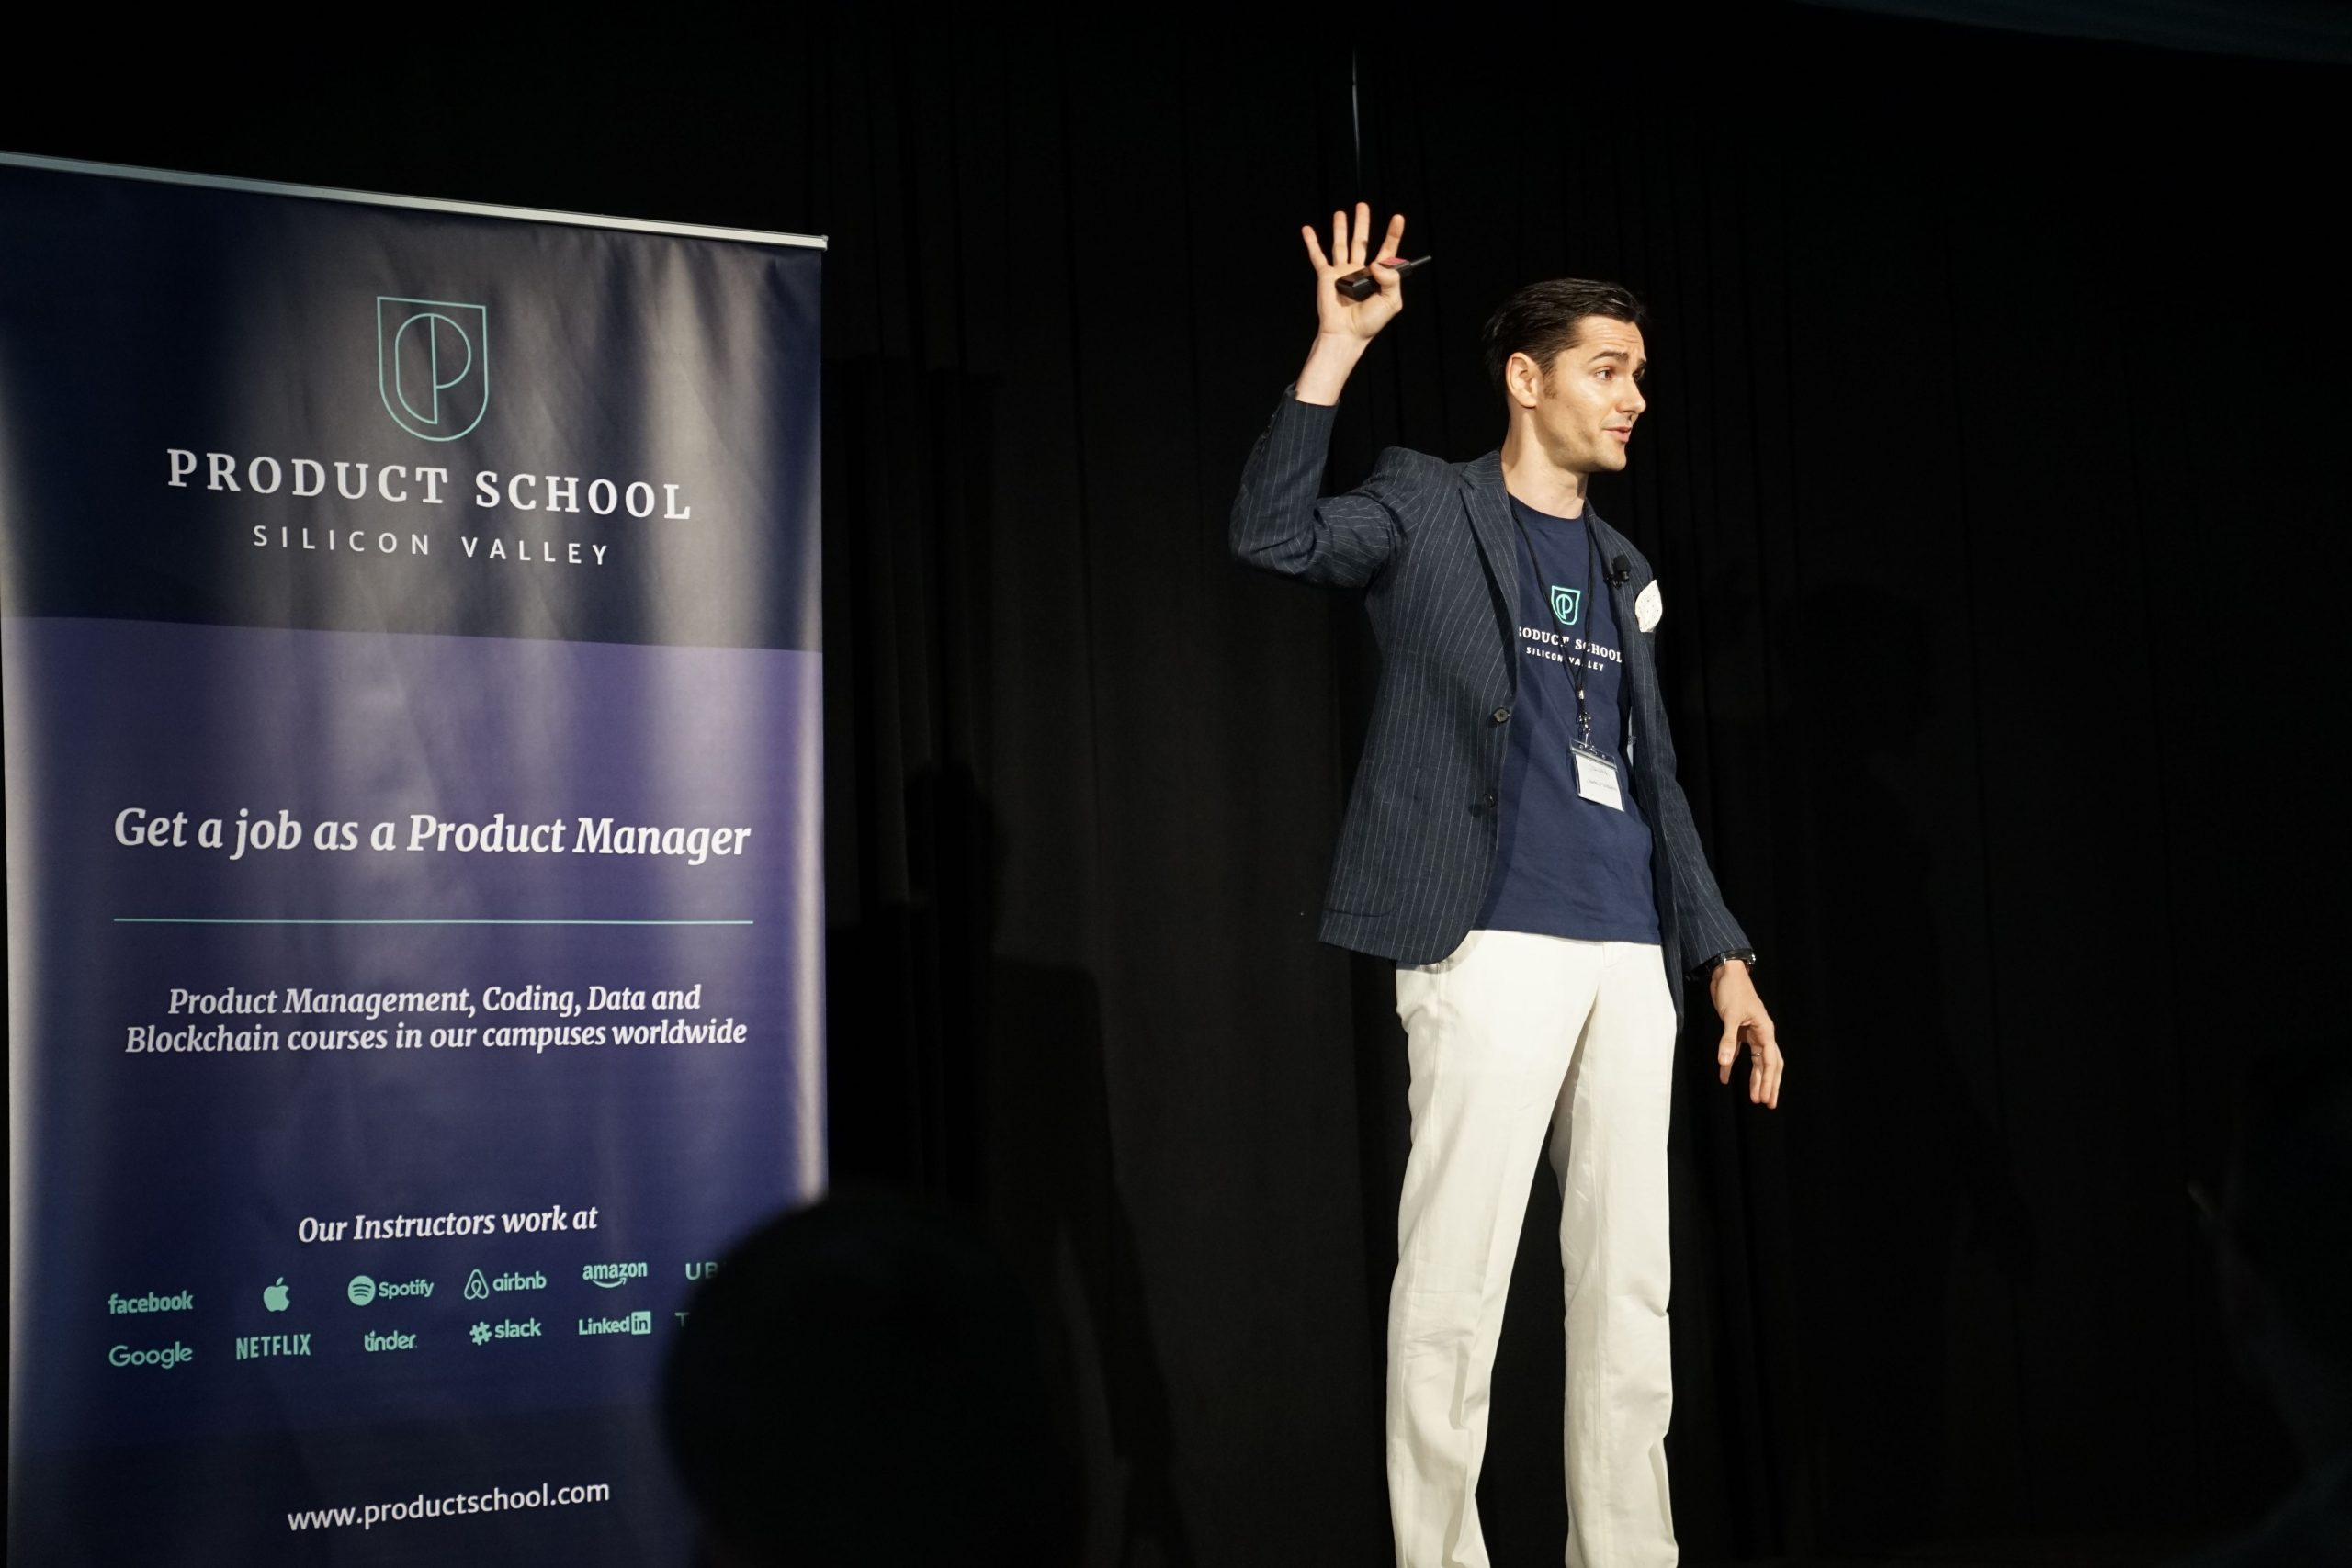 Man raising his hand during a presentation at a conference on stage